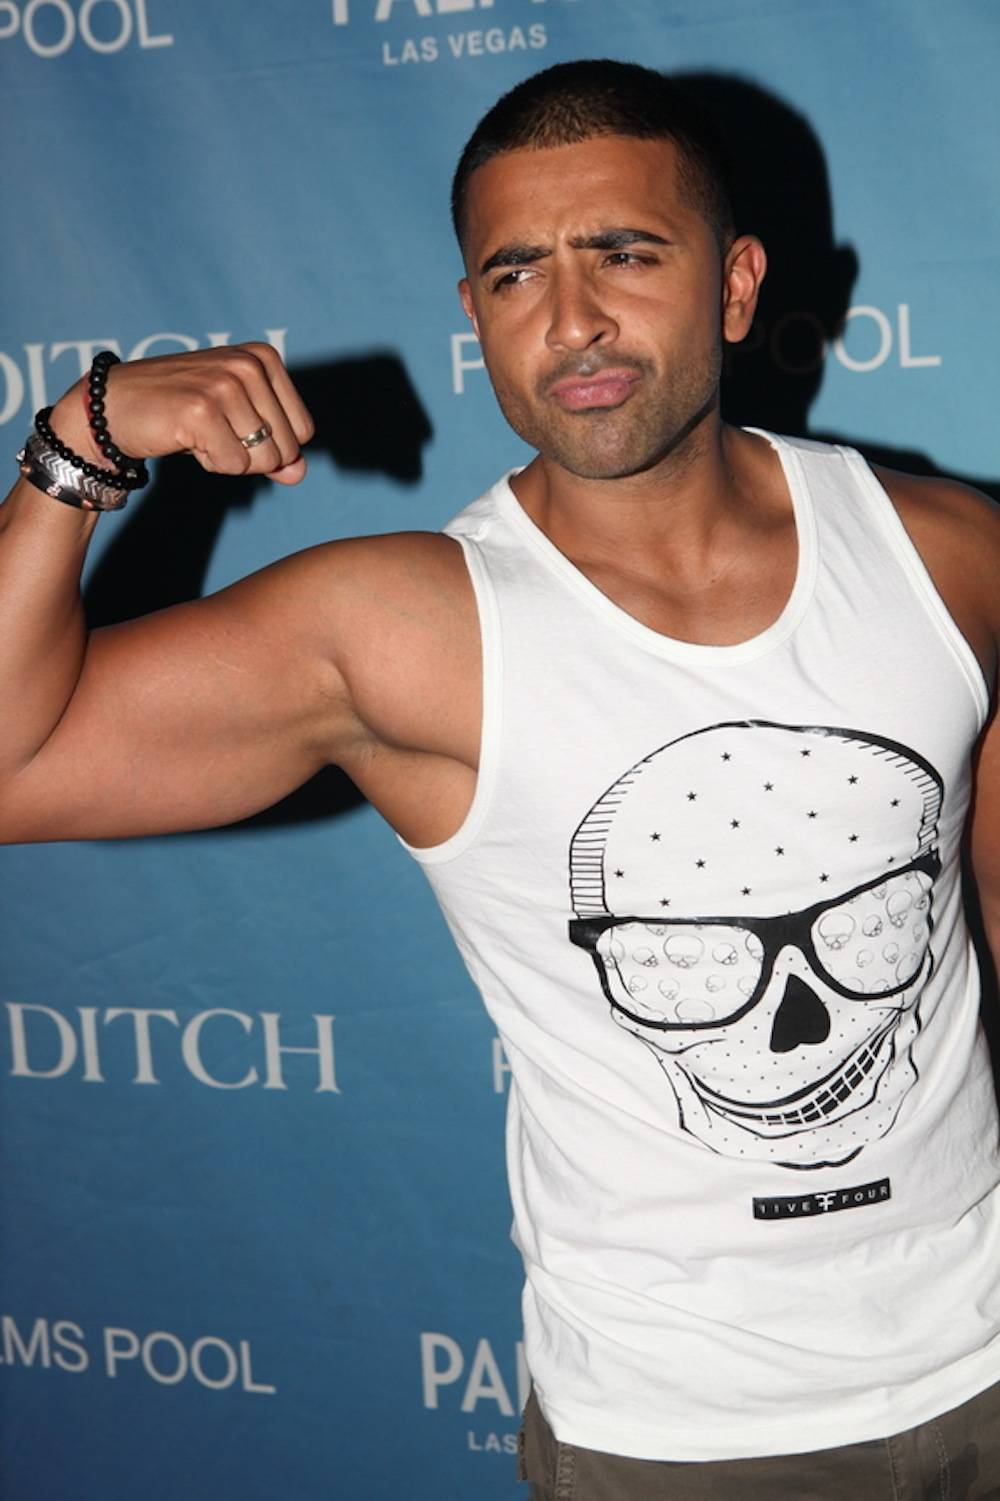 Jay Sean flexing